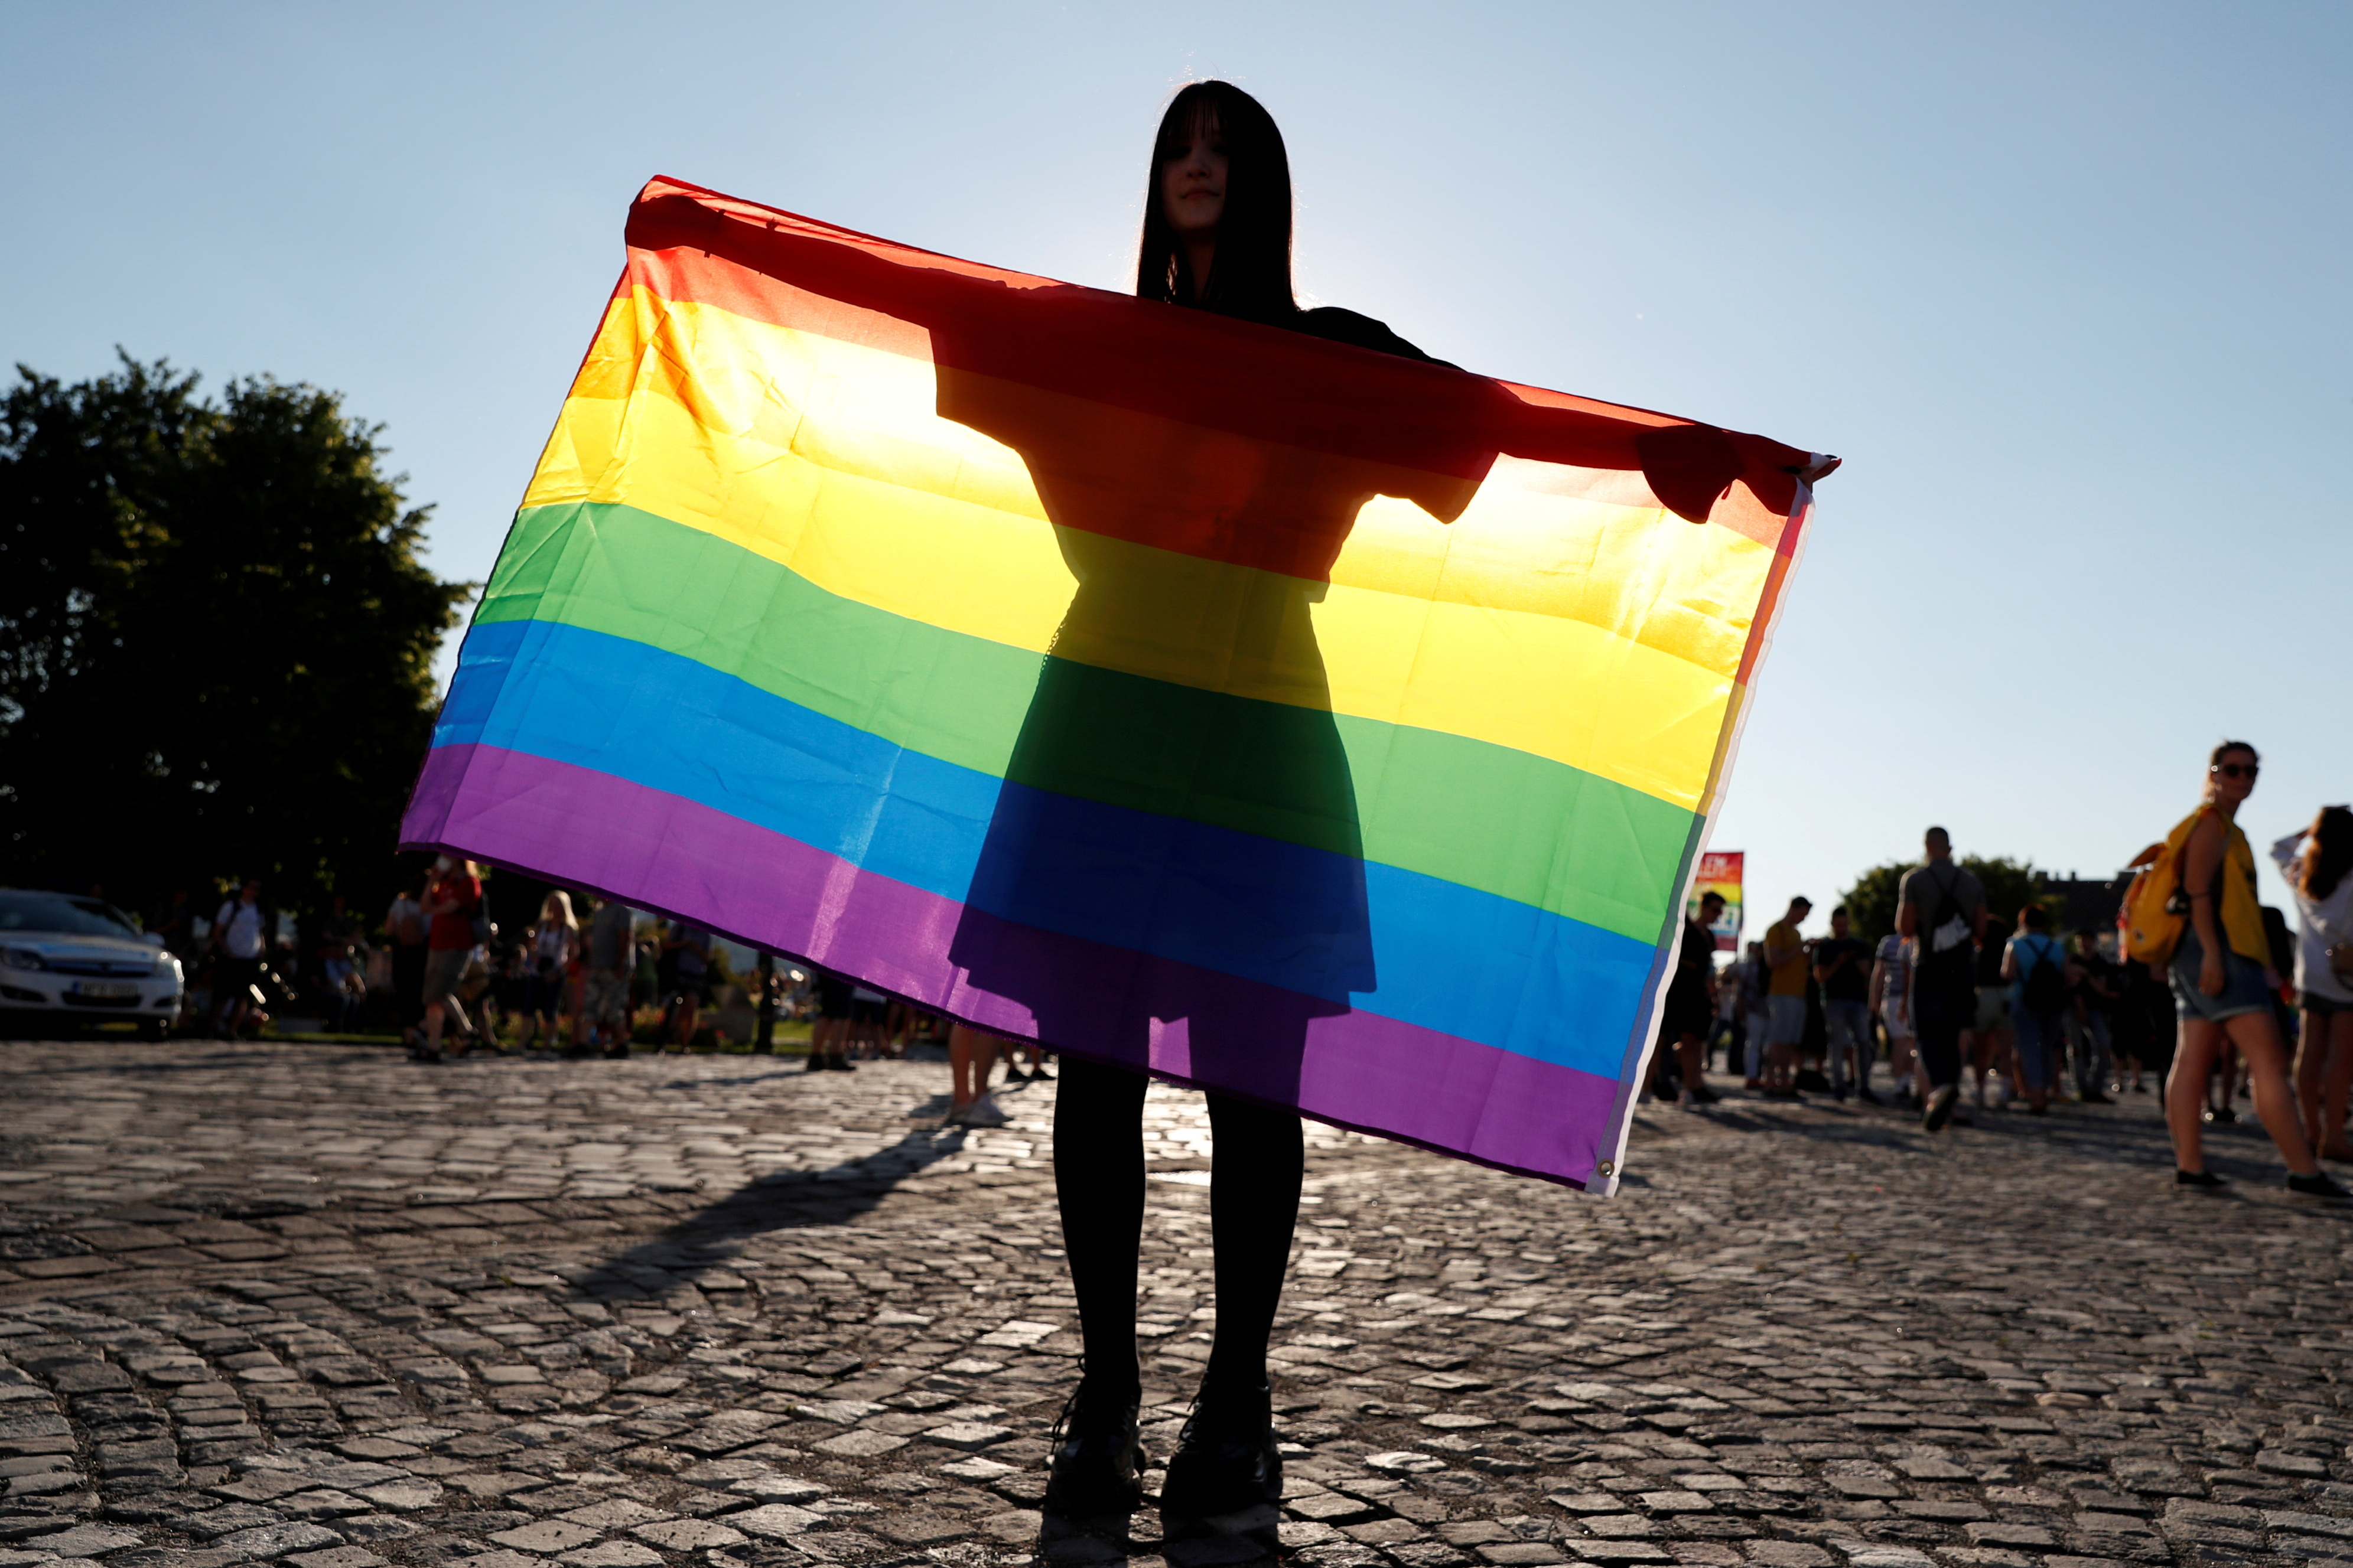 A demonstrator holds the LGBT flag during a protest against a law that bans LGBTQ content in schools and media at the Presidential Palace in Budapest, Hungary, June 16, 2021. REUTERS/Bernadett Szabo/File Photo